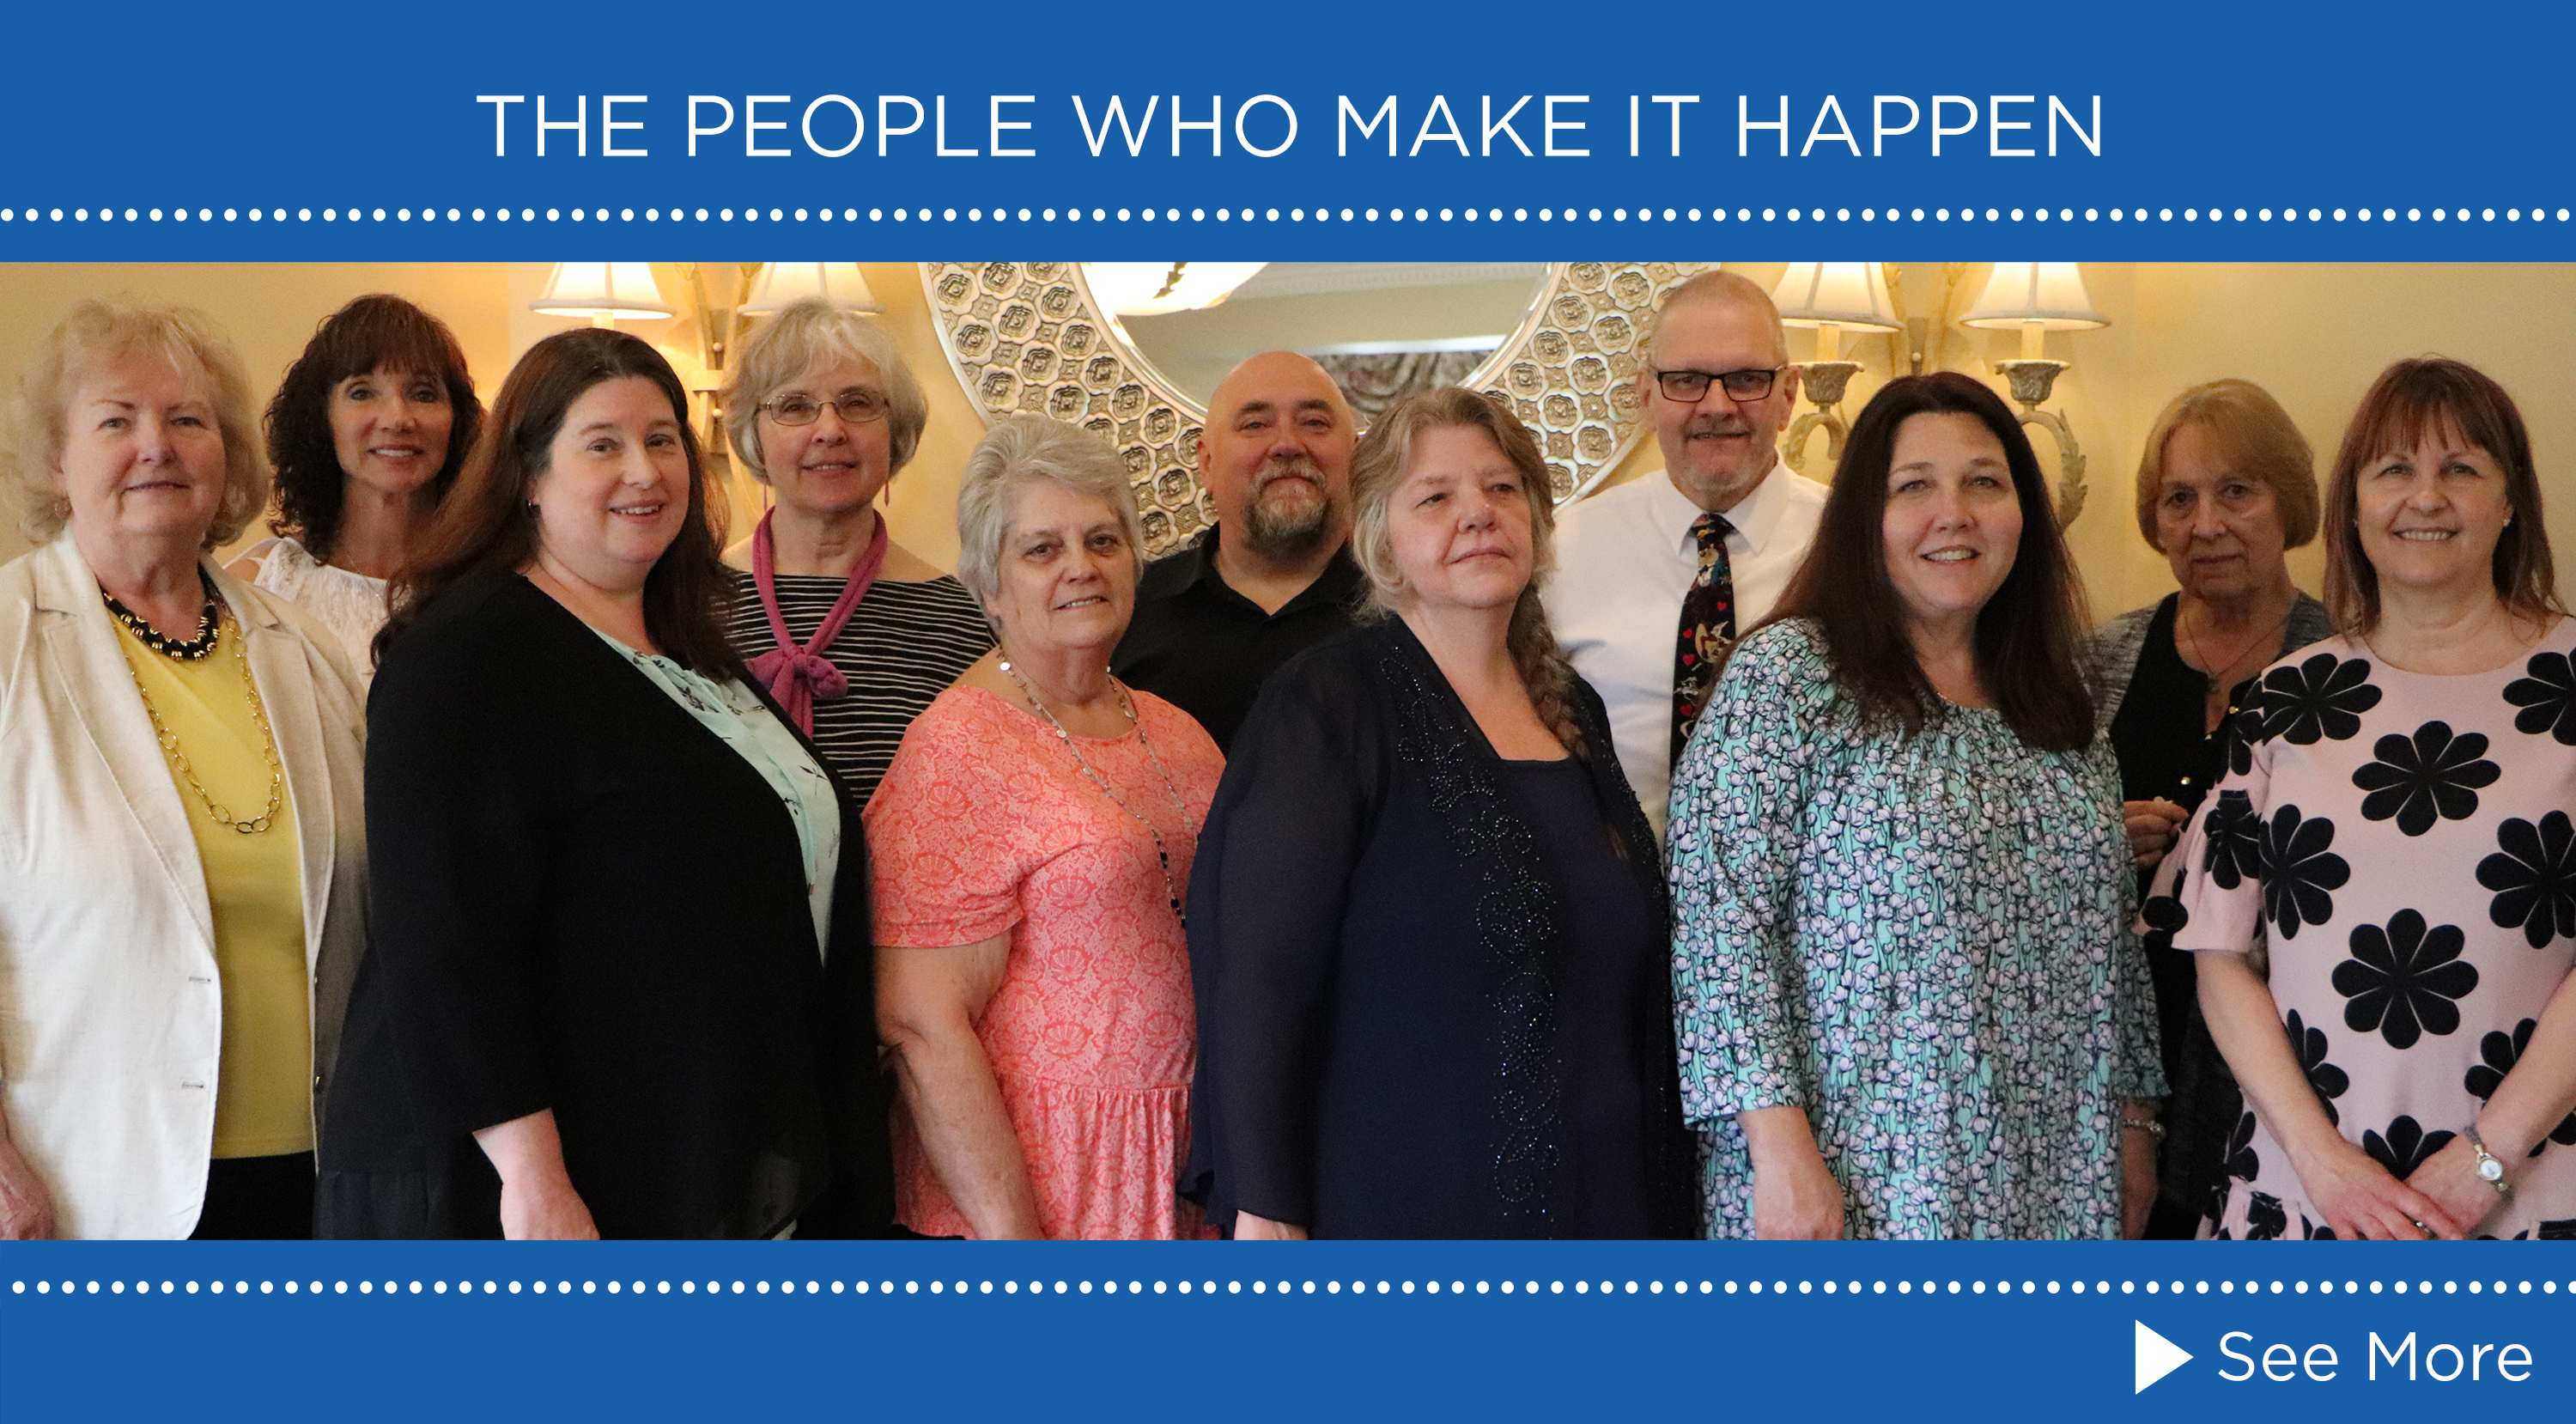 The people who make it happen